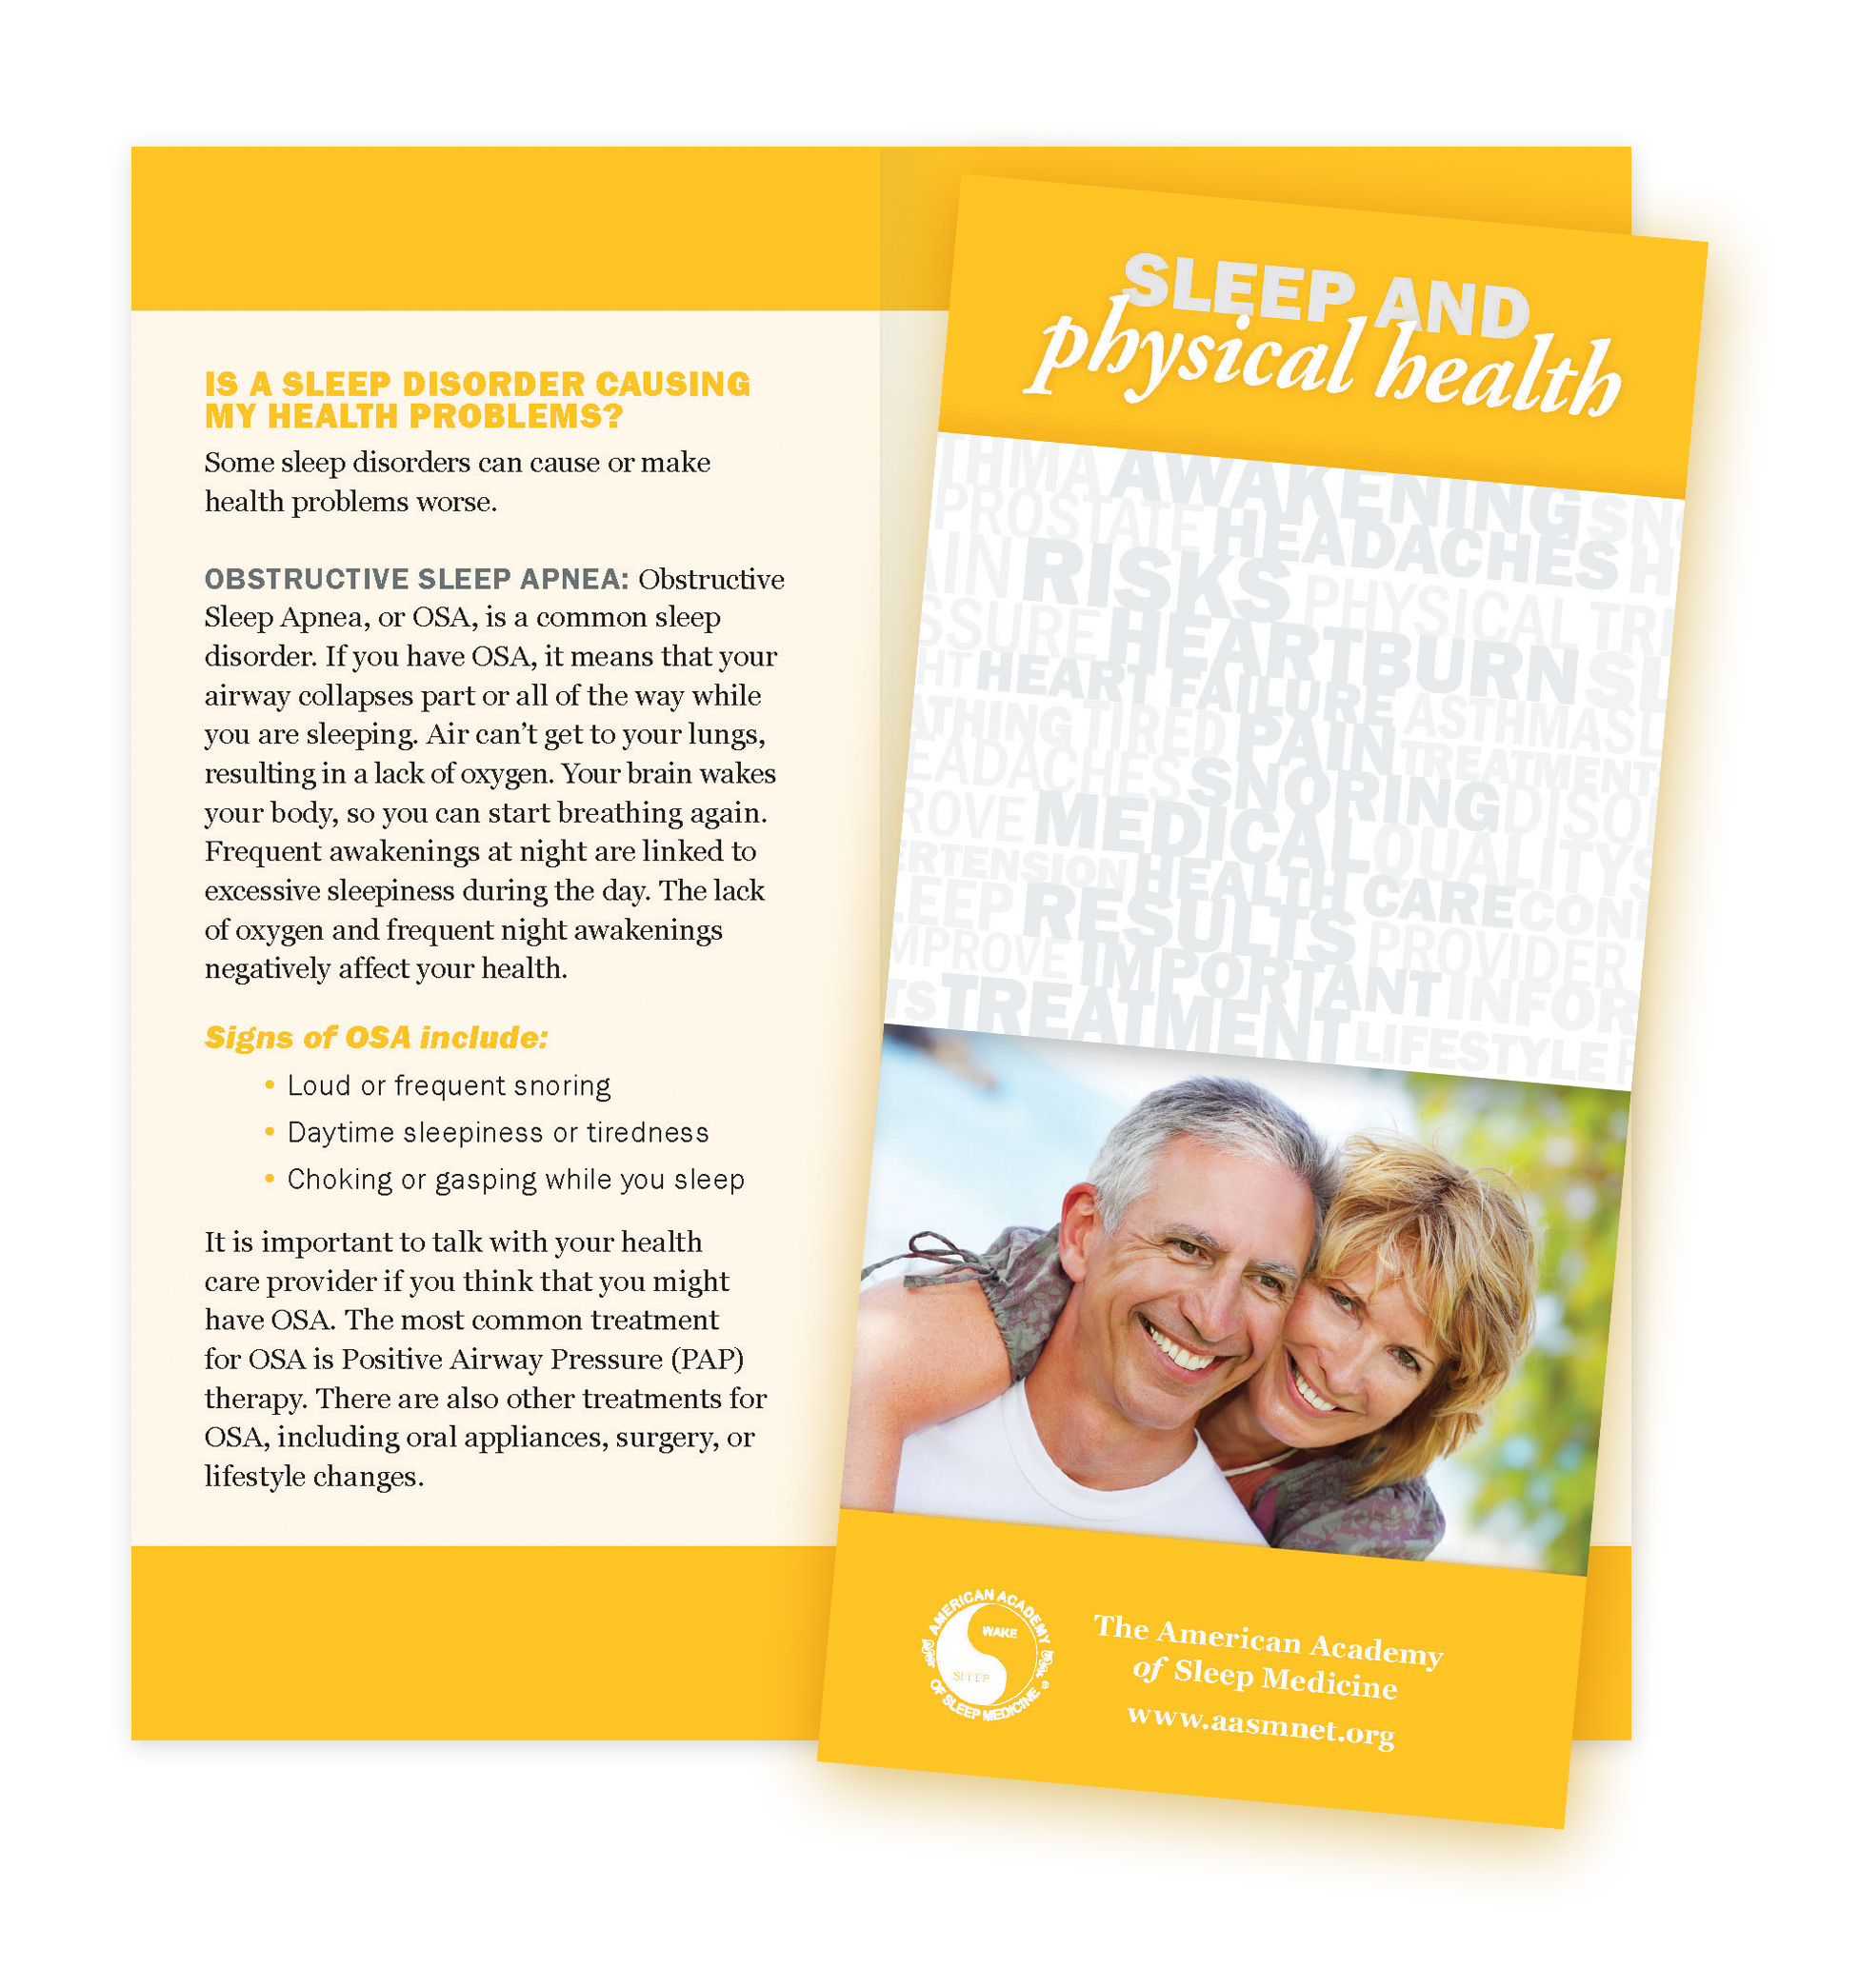 Sleep & Physical Health Patient Education Brochures (50 brochures)